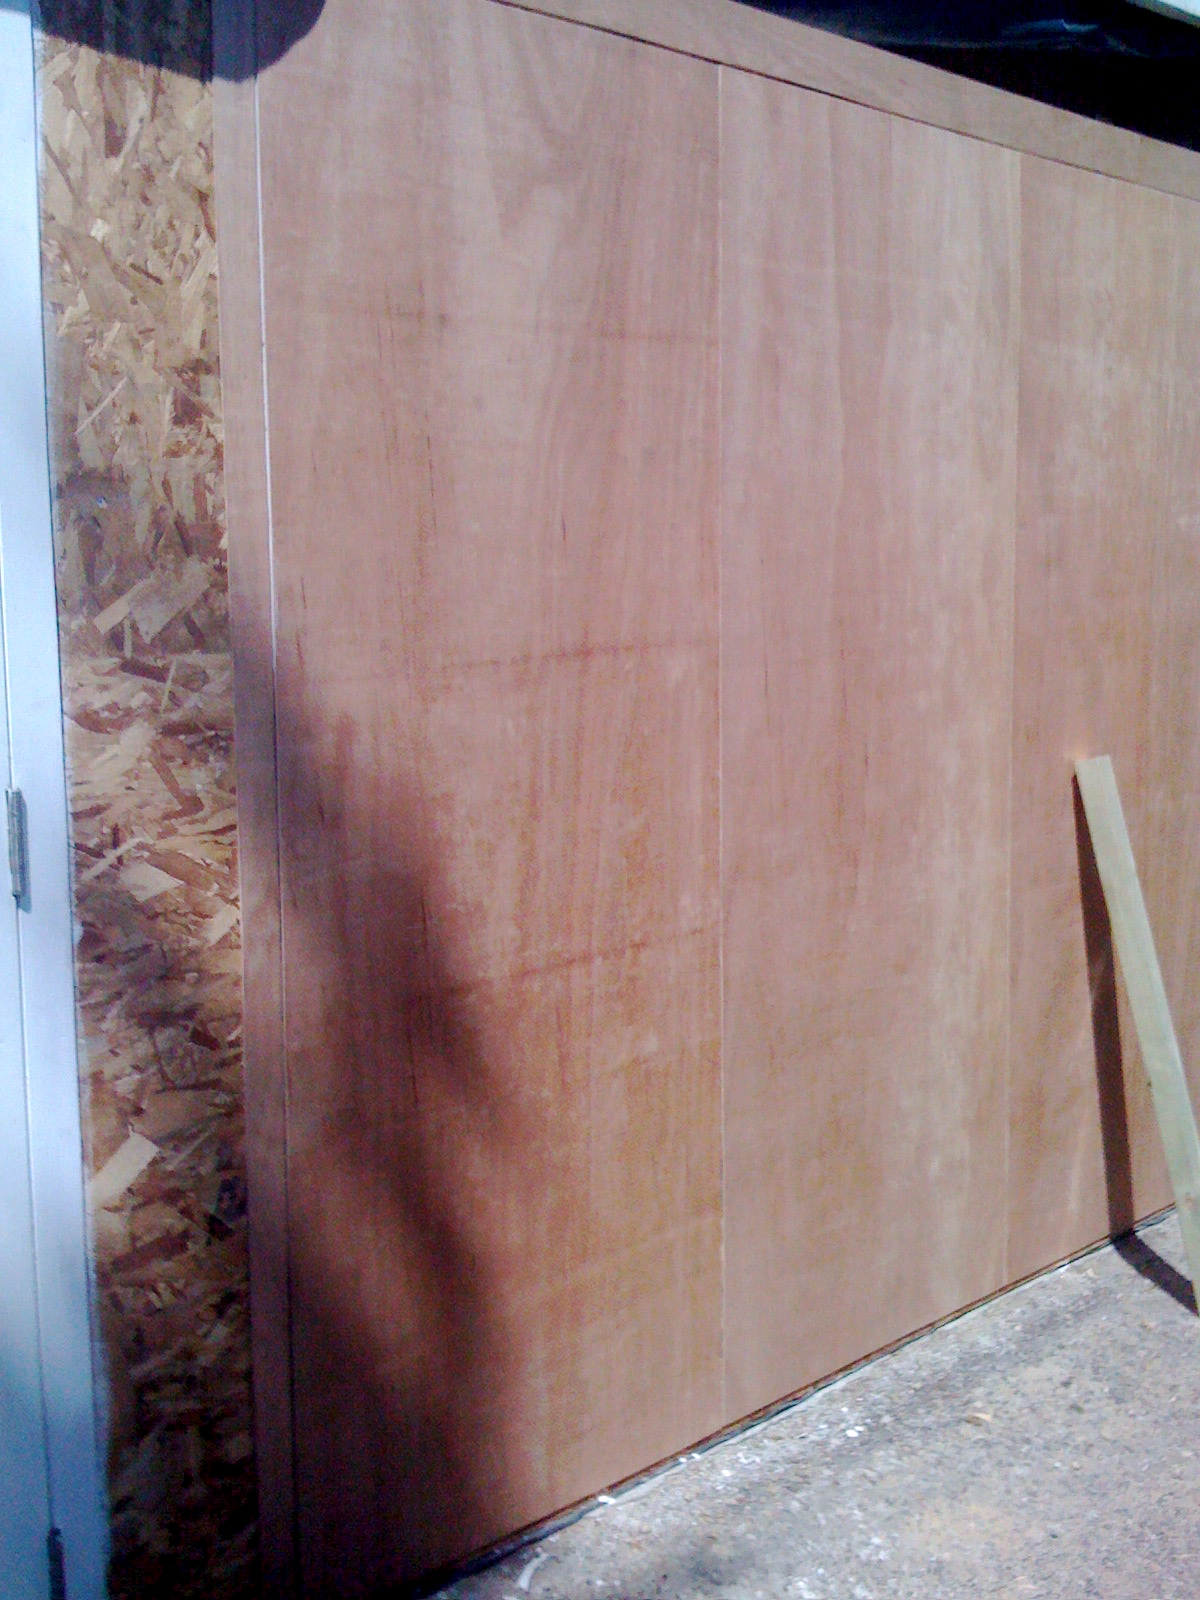 Exterior wall with bare plywood covering